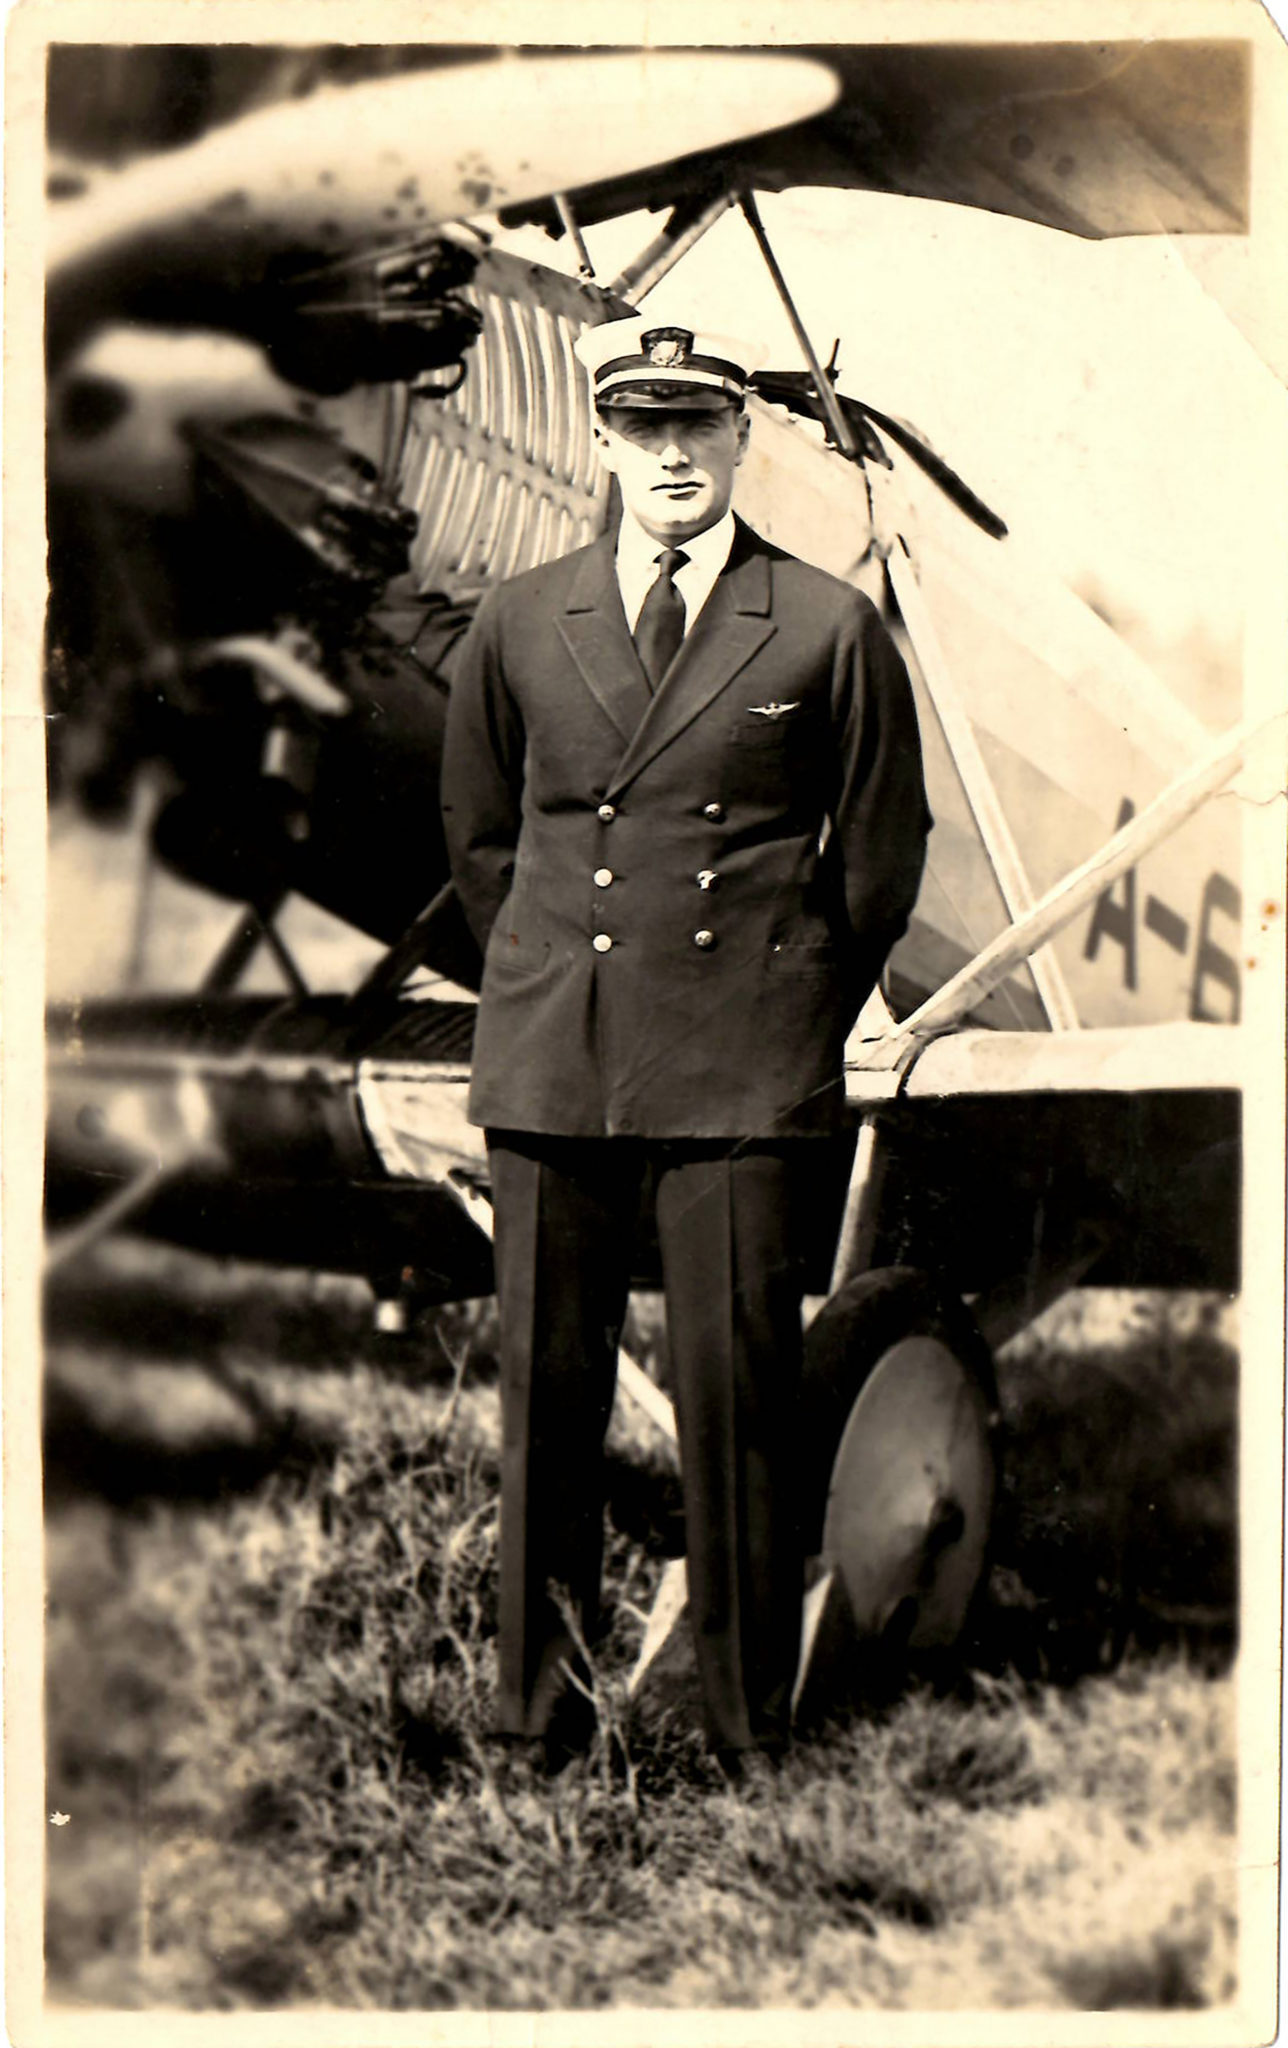 John A. Hilger, who retired as a brigadier general in 1966, is shown as a  flying cadet at Army Air Corps flying school in 1933.